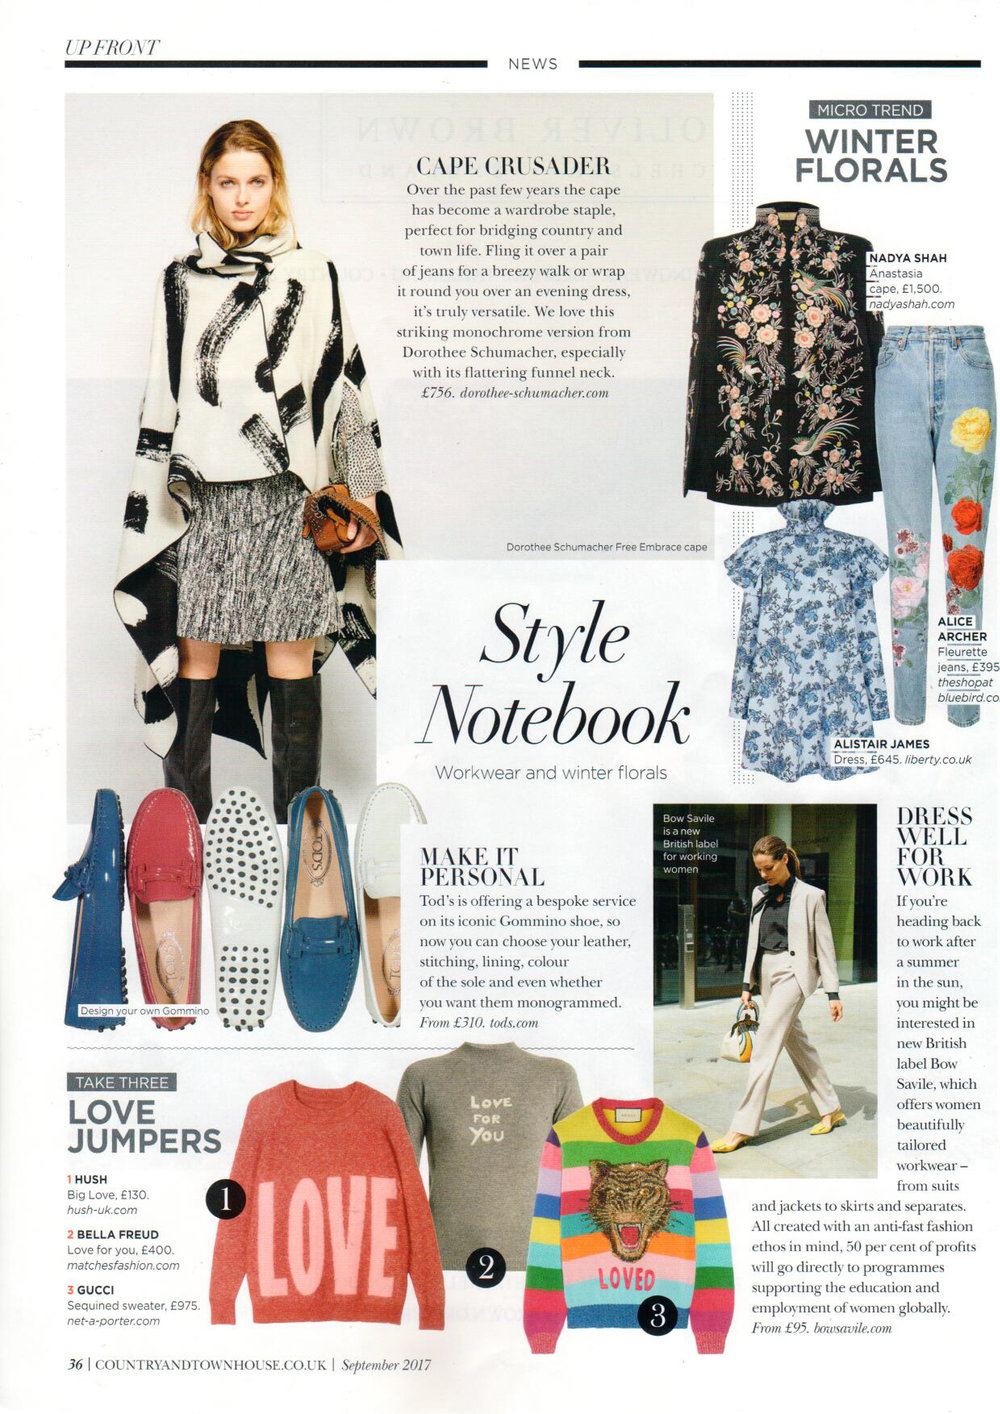 Nadya Shah in Country & Townhouse, September Issue, 09.08.jpg